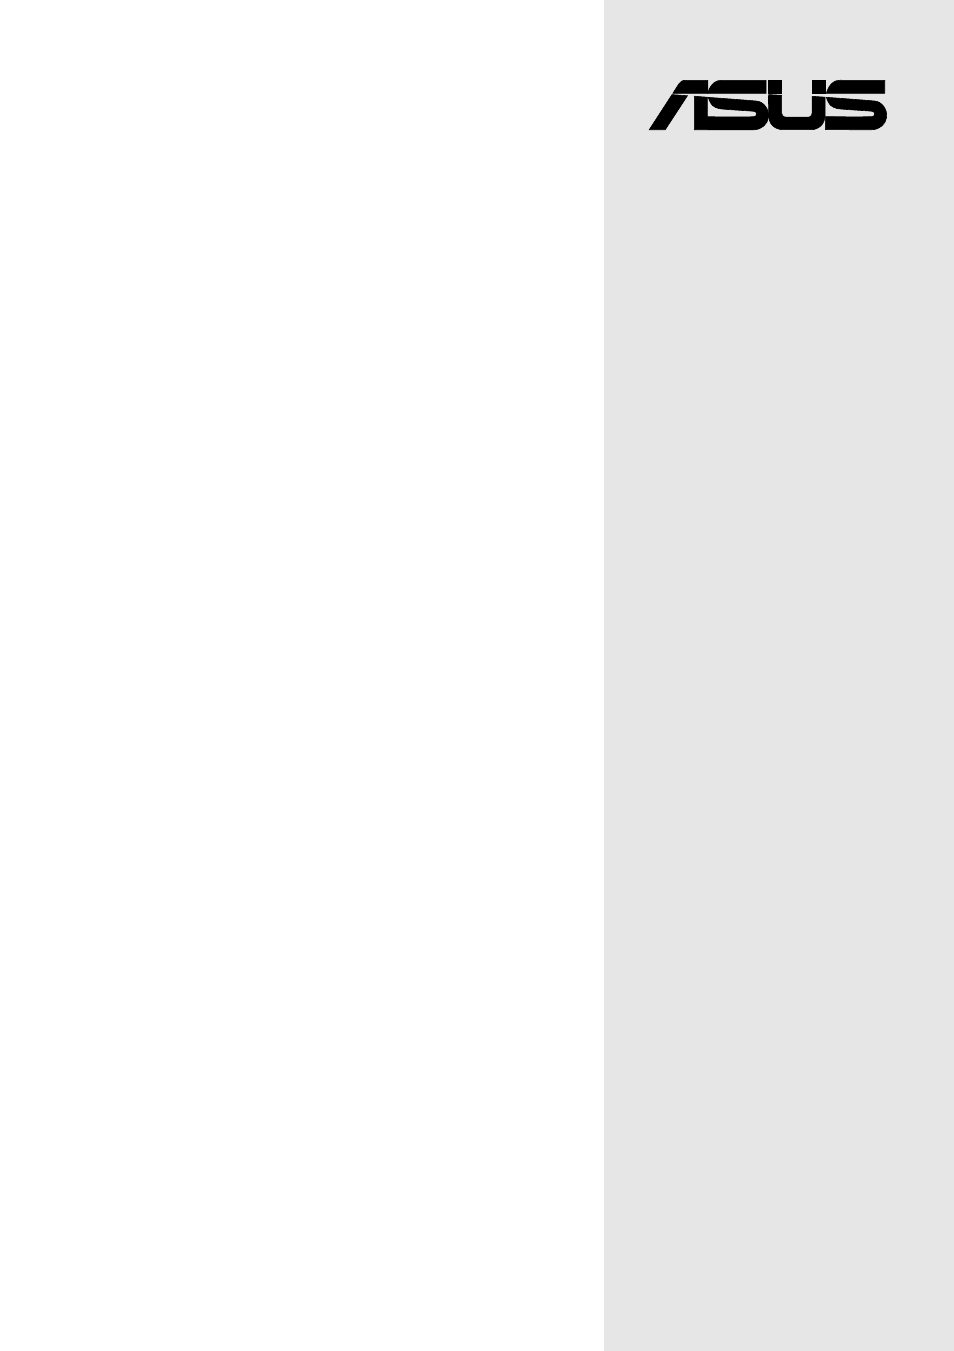 asus a7n266 vm user manual 116 pages also for a7n266 vm aa rh manualsdir com Asus Laptop Models Asus Q500A User Manual